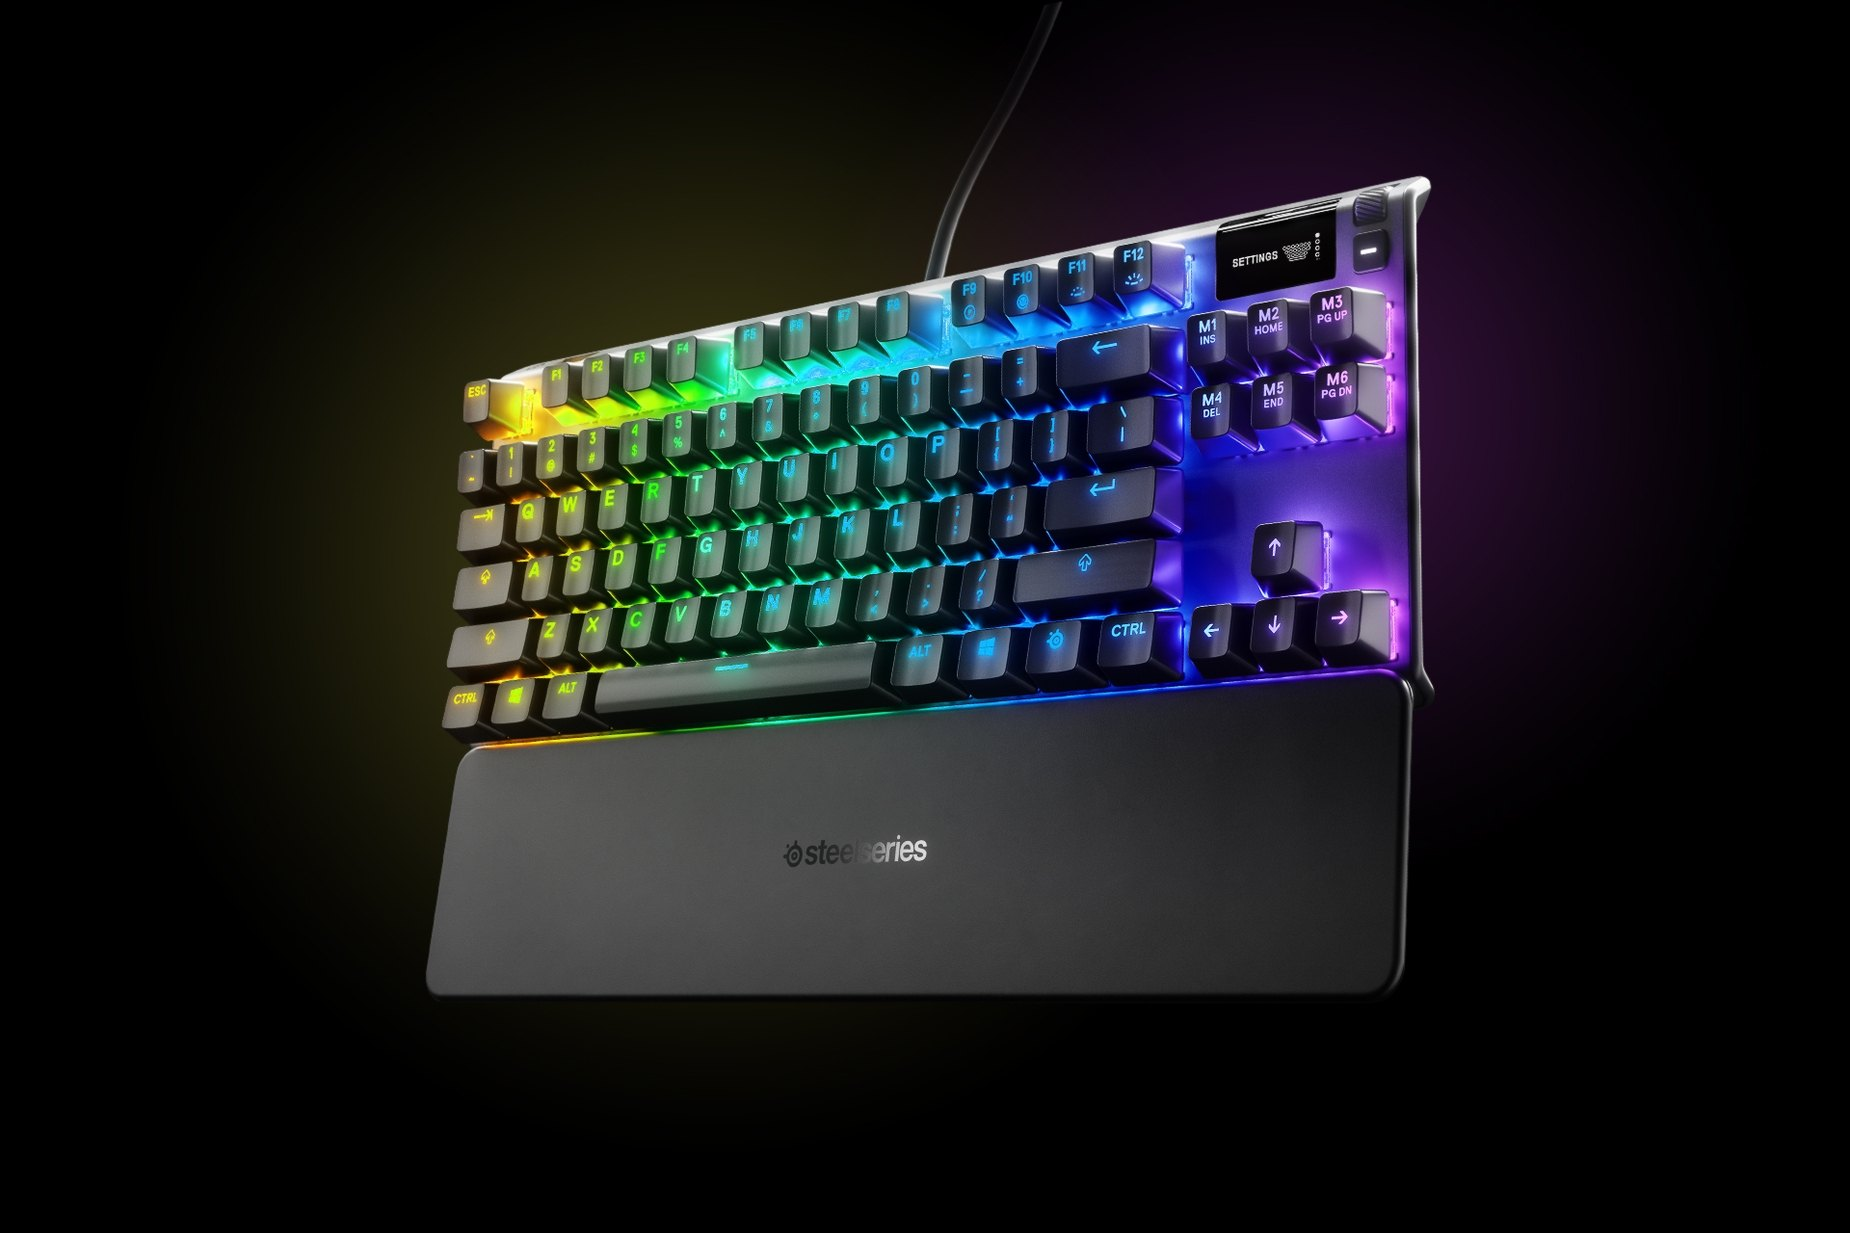 UK İngilizce - Apex 7 TKL (Brown Switch) gaming keyboard with the illumination lit up on dark background, also shows the OLED screen and controls used to change settings and adjust audio